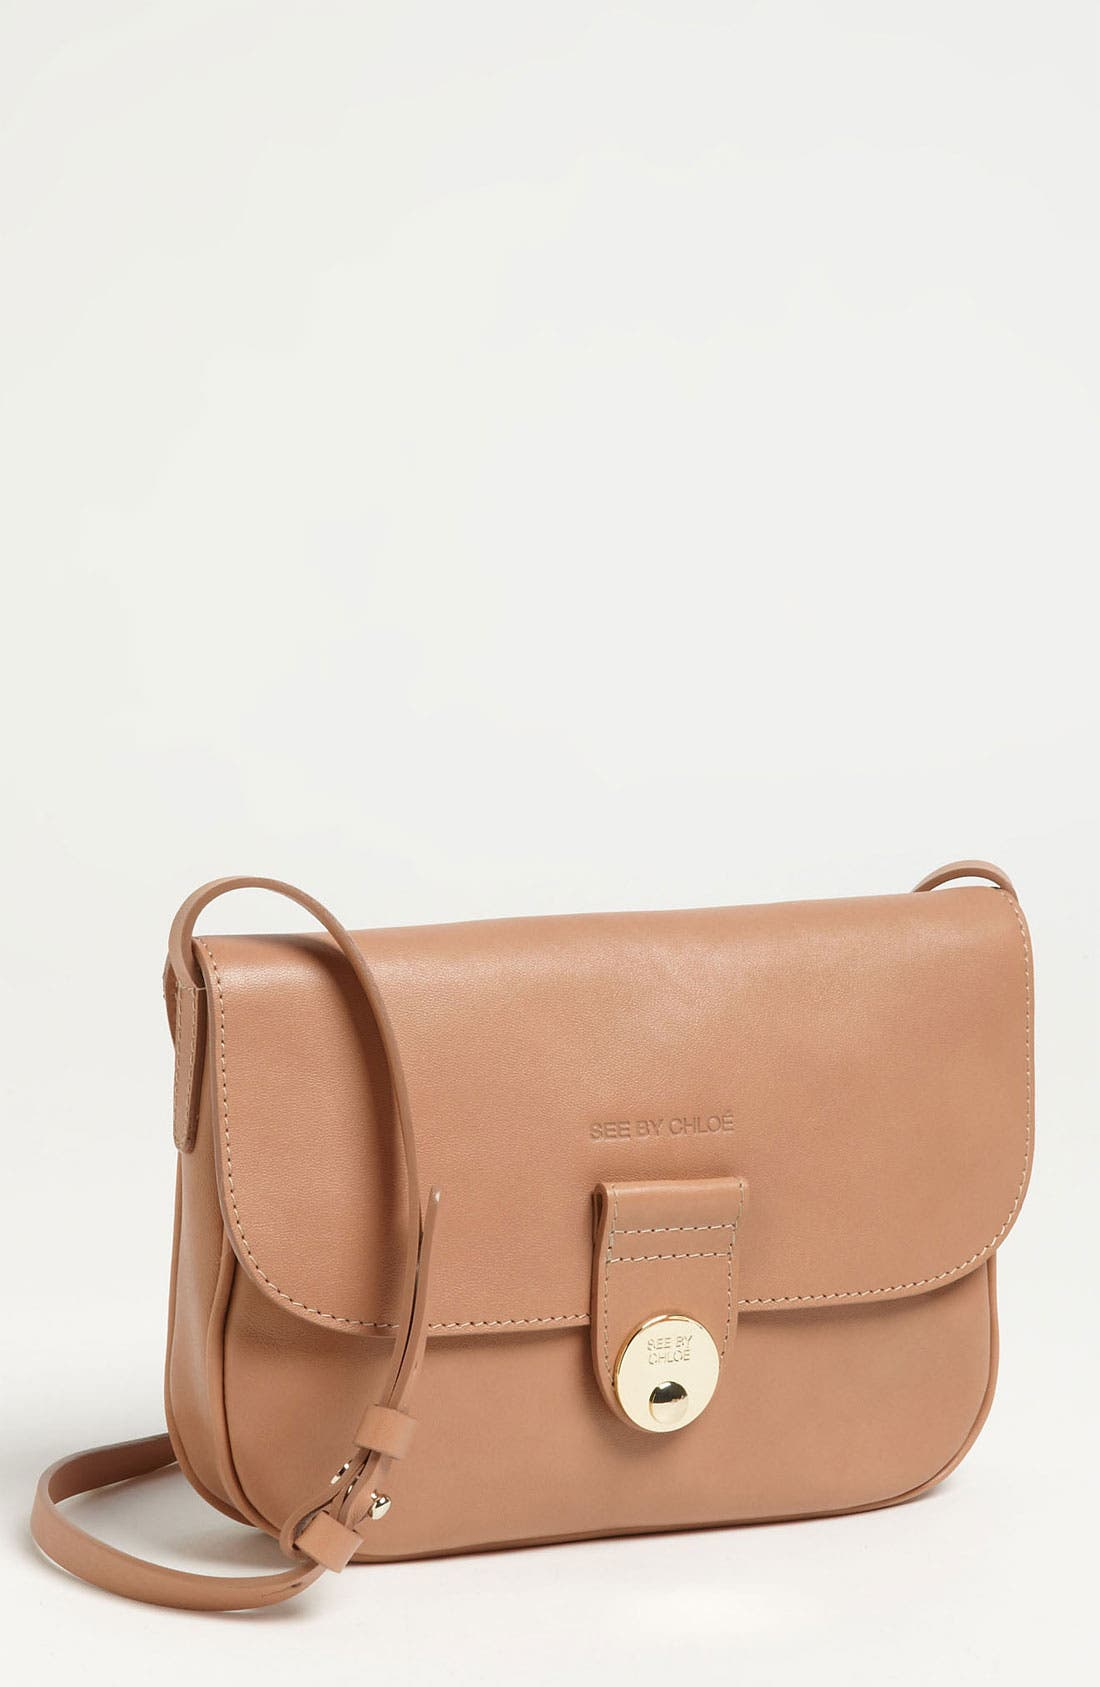 Alternate Image 1 Selected - See by Chloé 'Maani' Leather Crossbody Bag